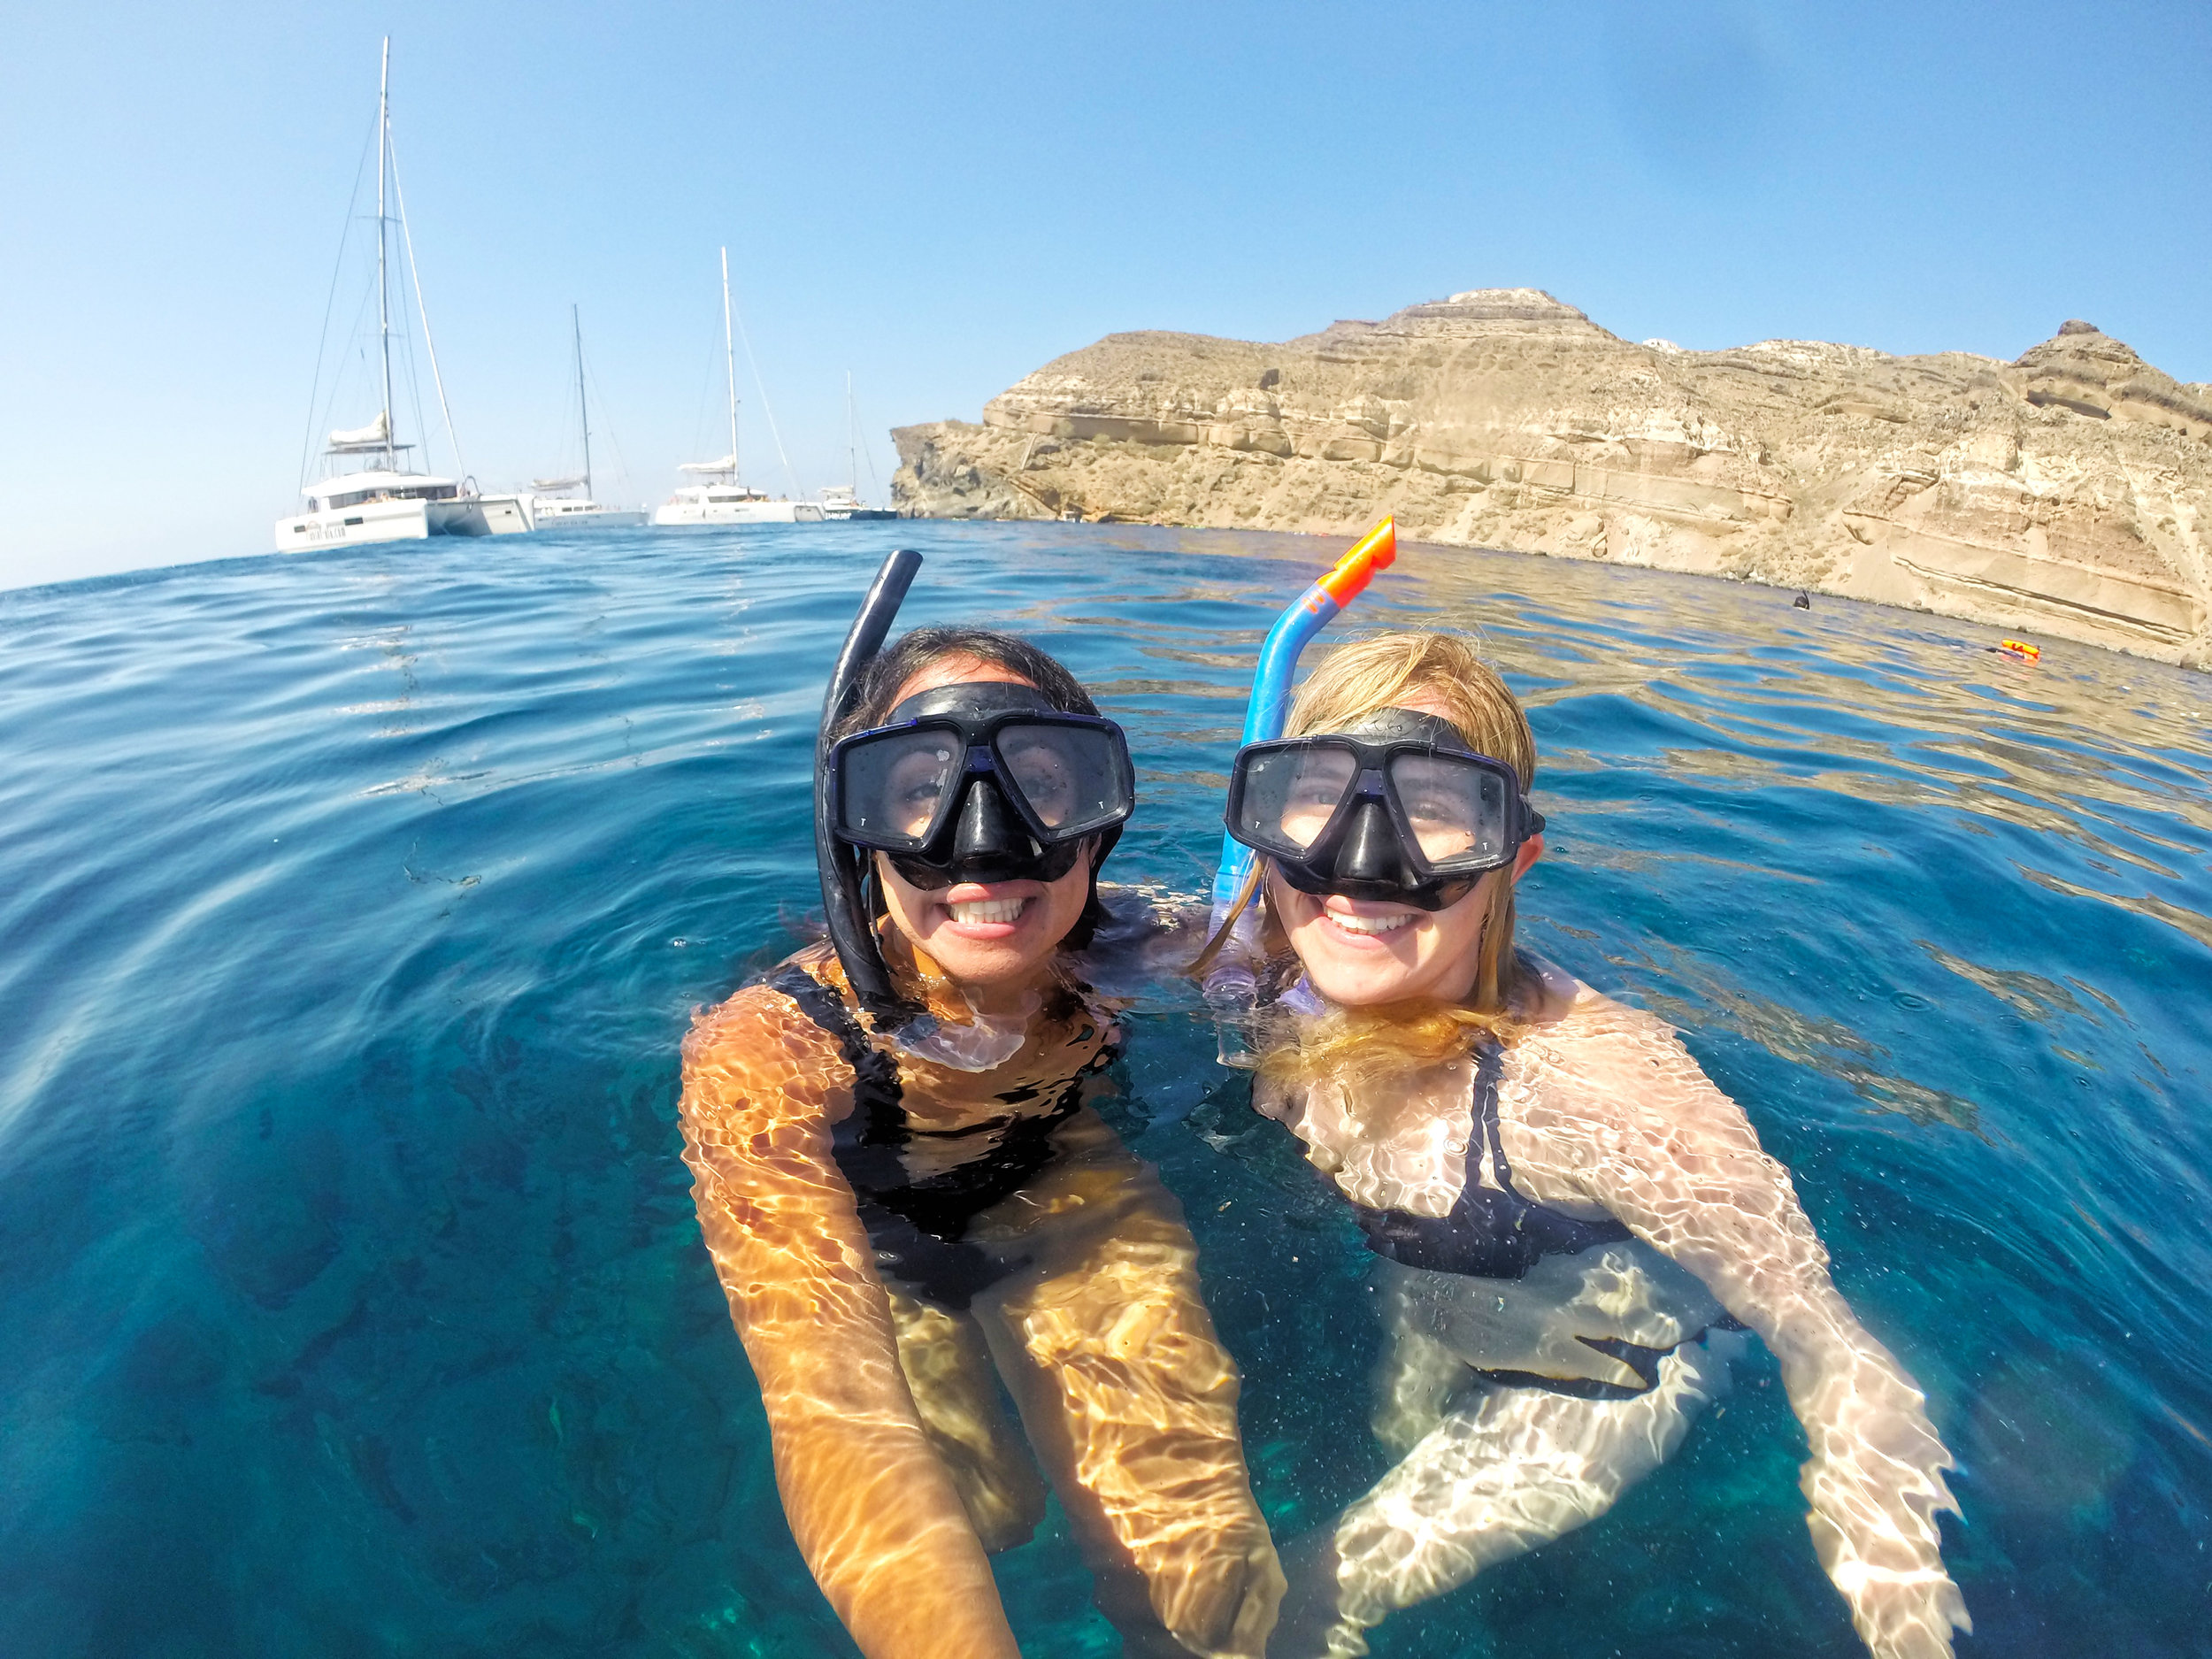 Oh right, this is me, and my bestie, and we look so cute in snorkel masks...